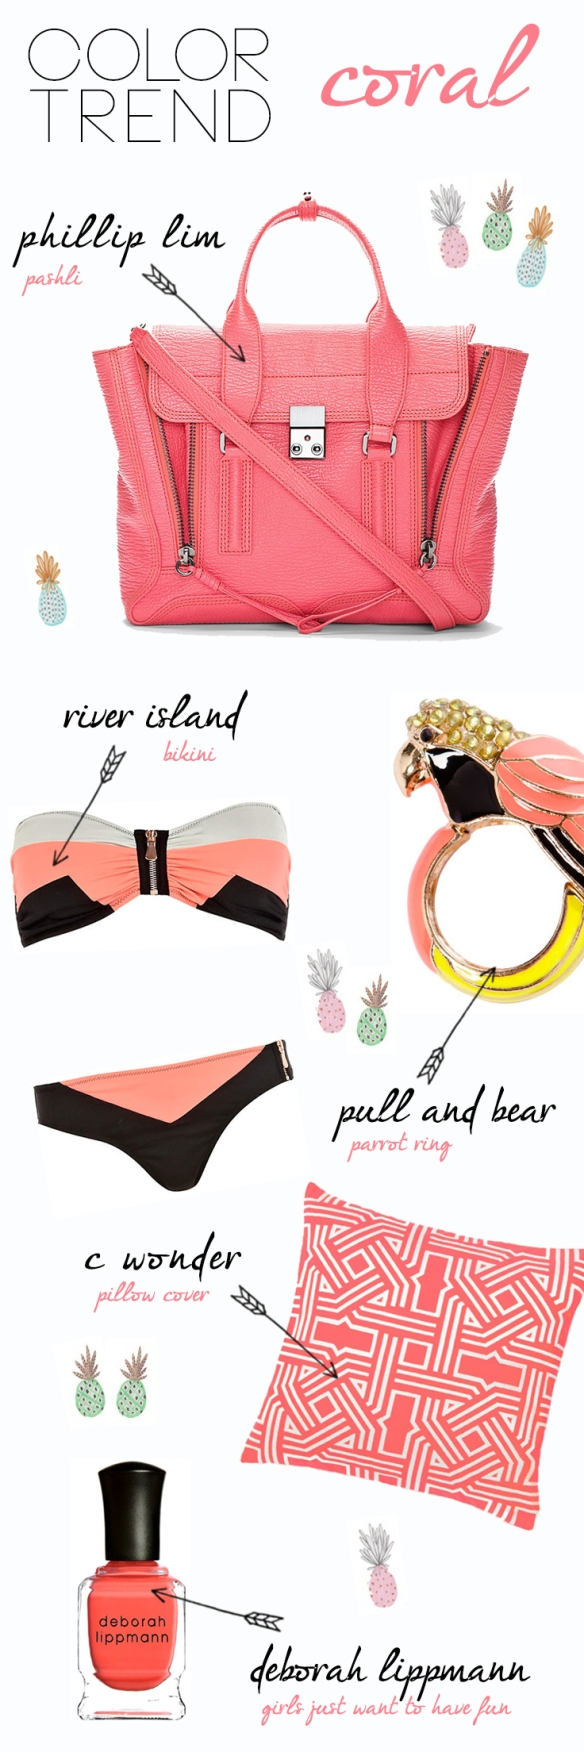 Color Trend - Coral